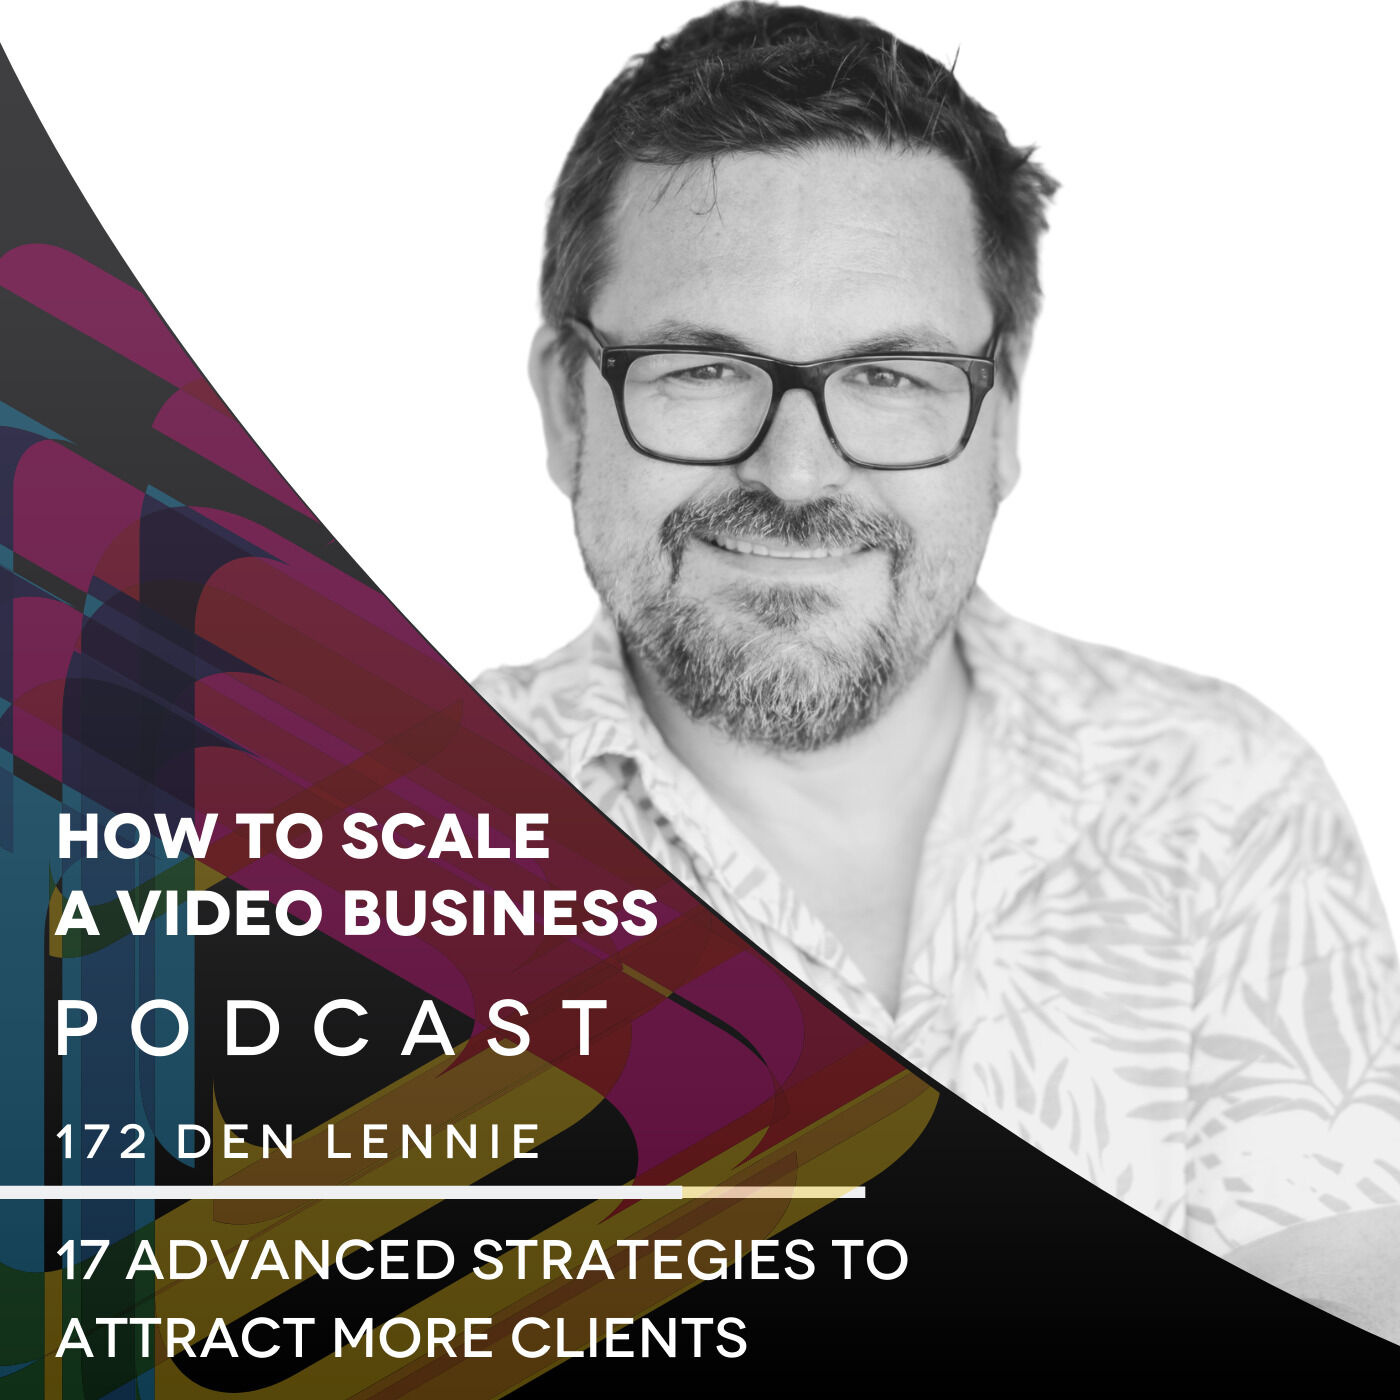 17 Advanced Strategies to Attract More Clients. EP #172 - Den Lennie